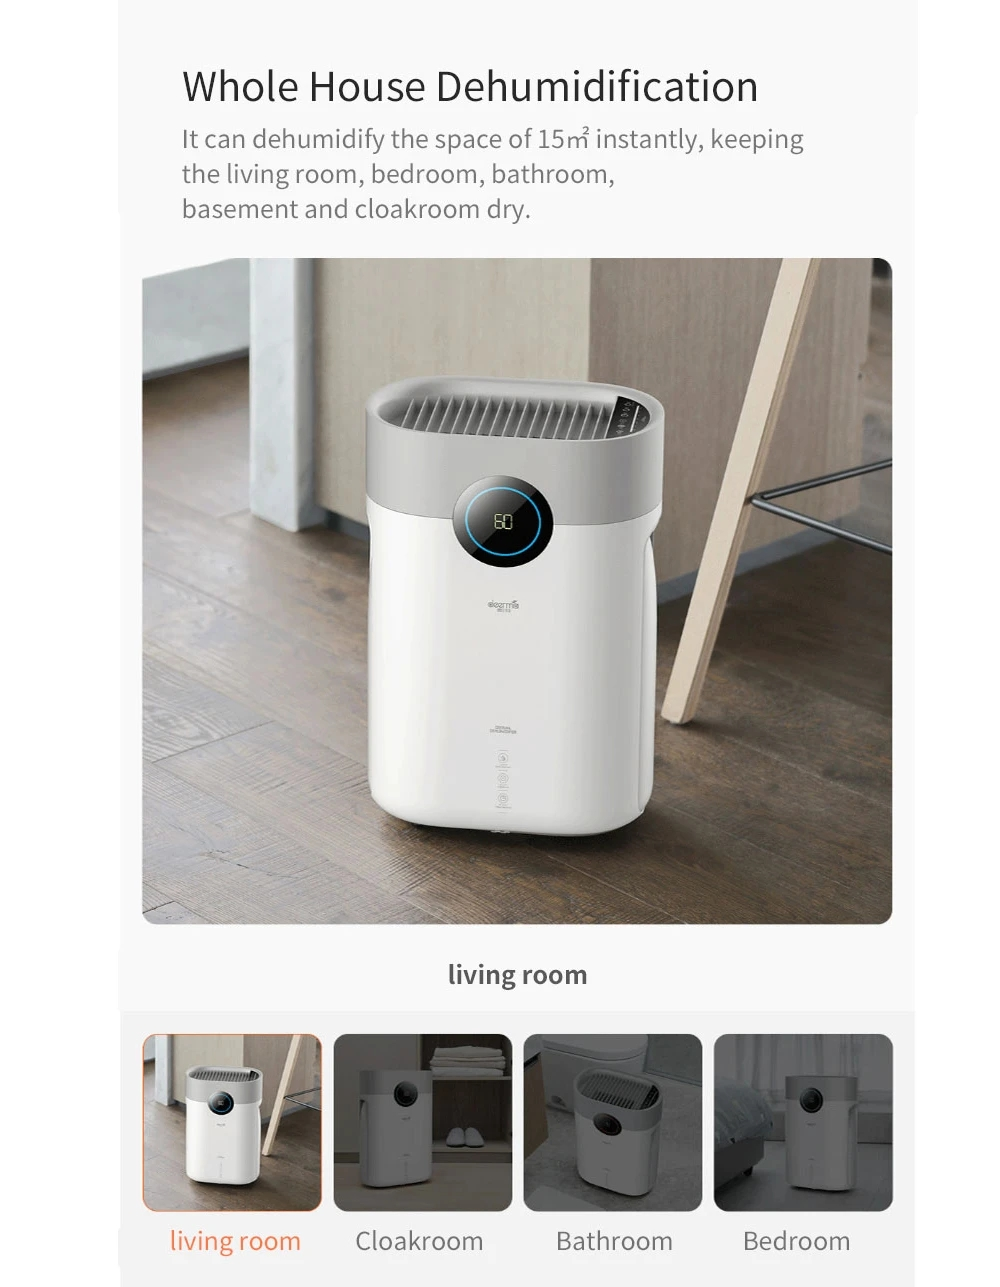 Deerma DEM-DT16C Air Dehumidifier EU Plug Dual Display Smart Screen - White